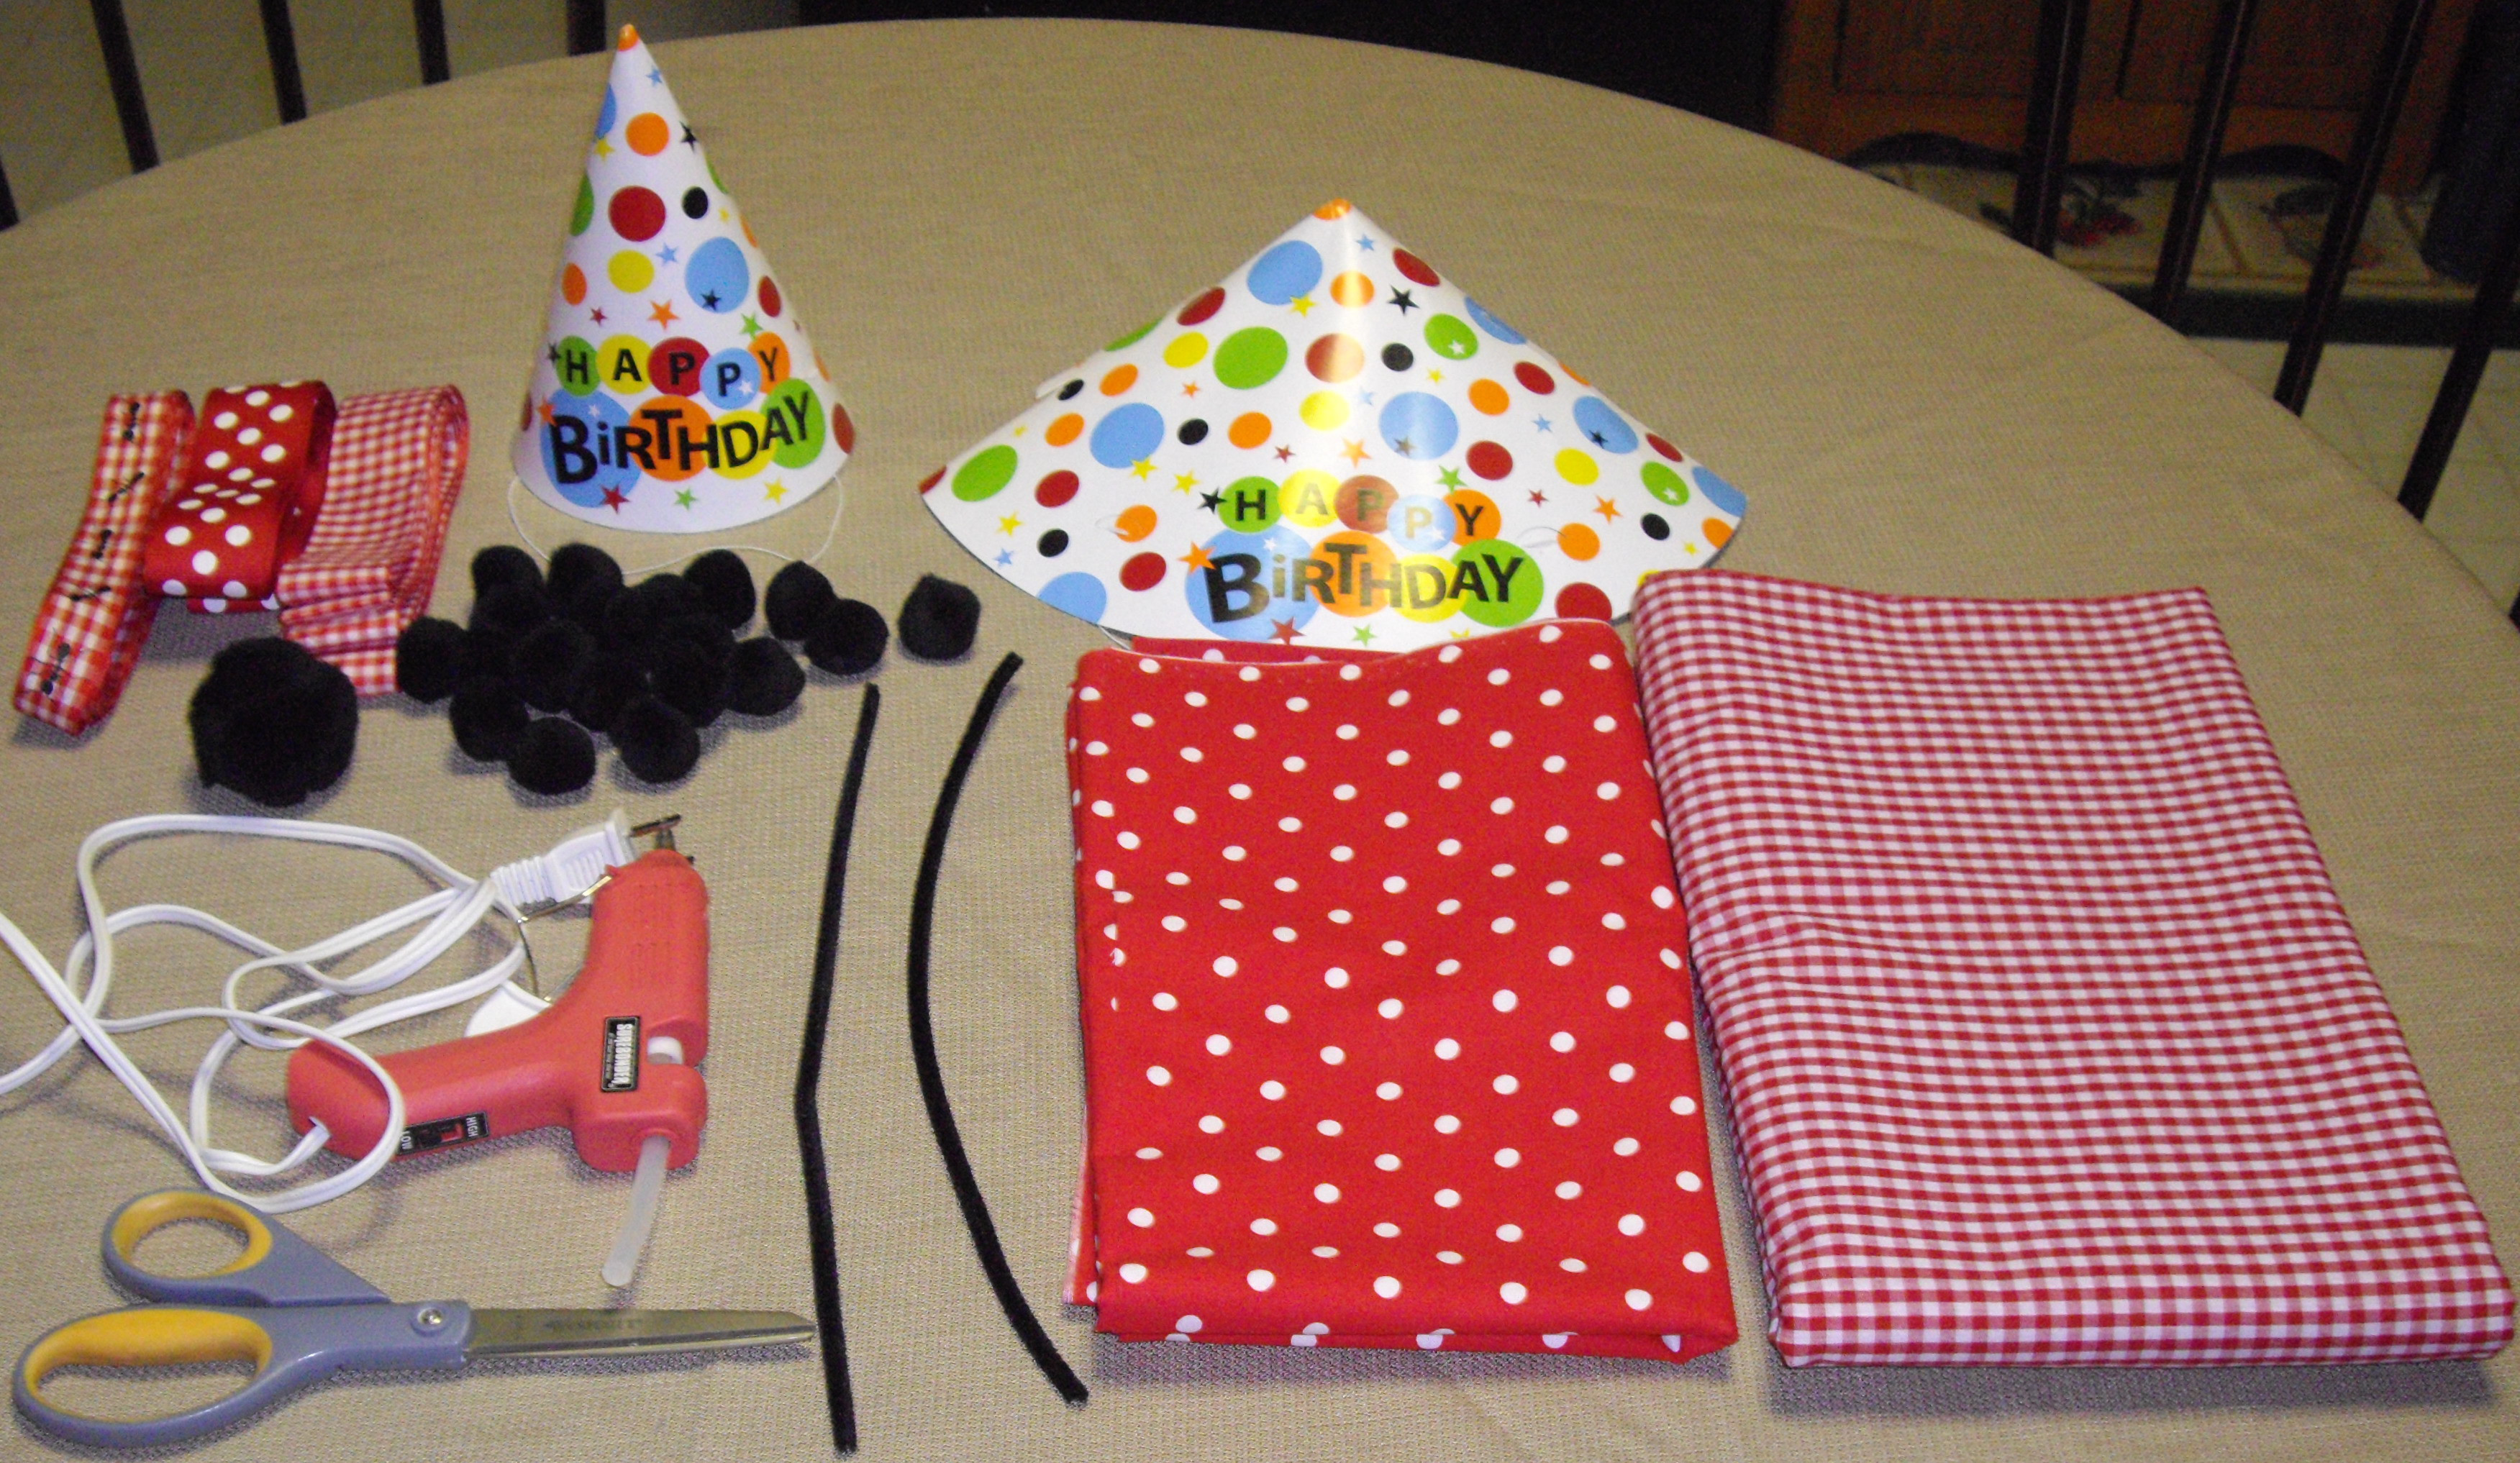 Best ideas about DIY Party Hats For Adults . Save or Pin Diy Fabric Birthday Party Hat diy project how to make a Now.